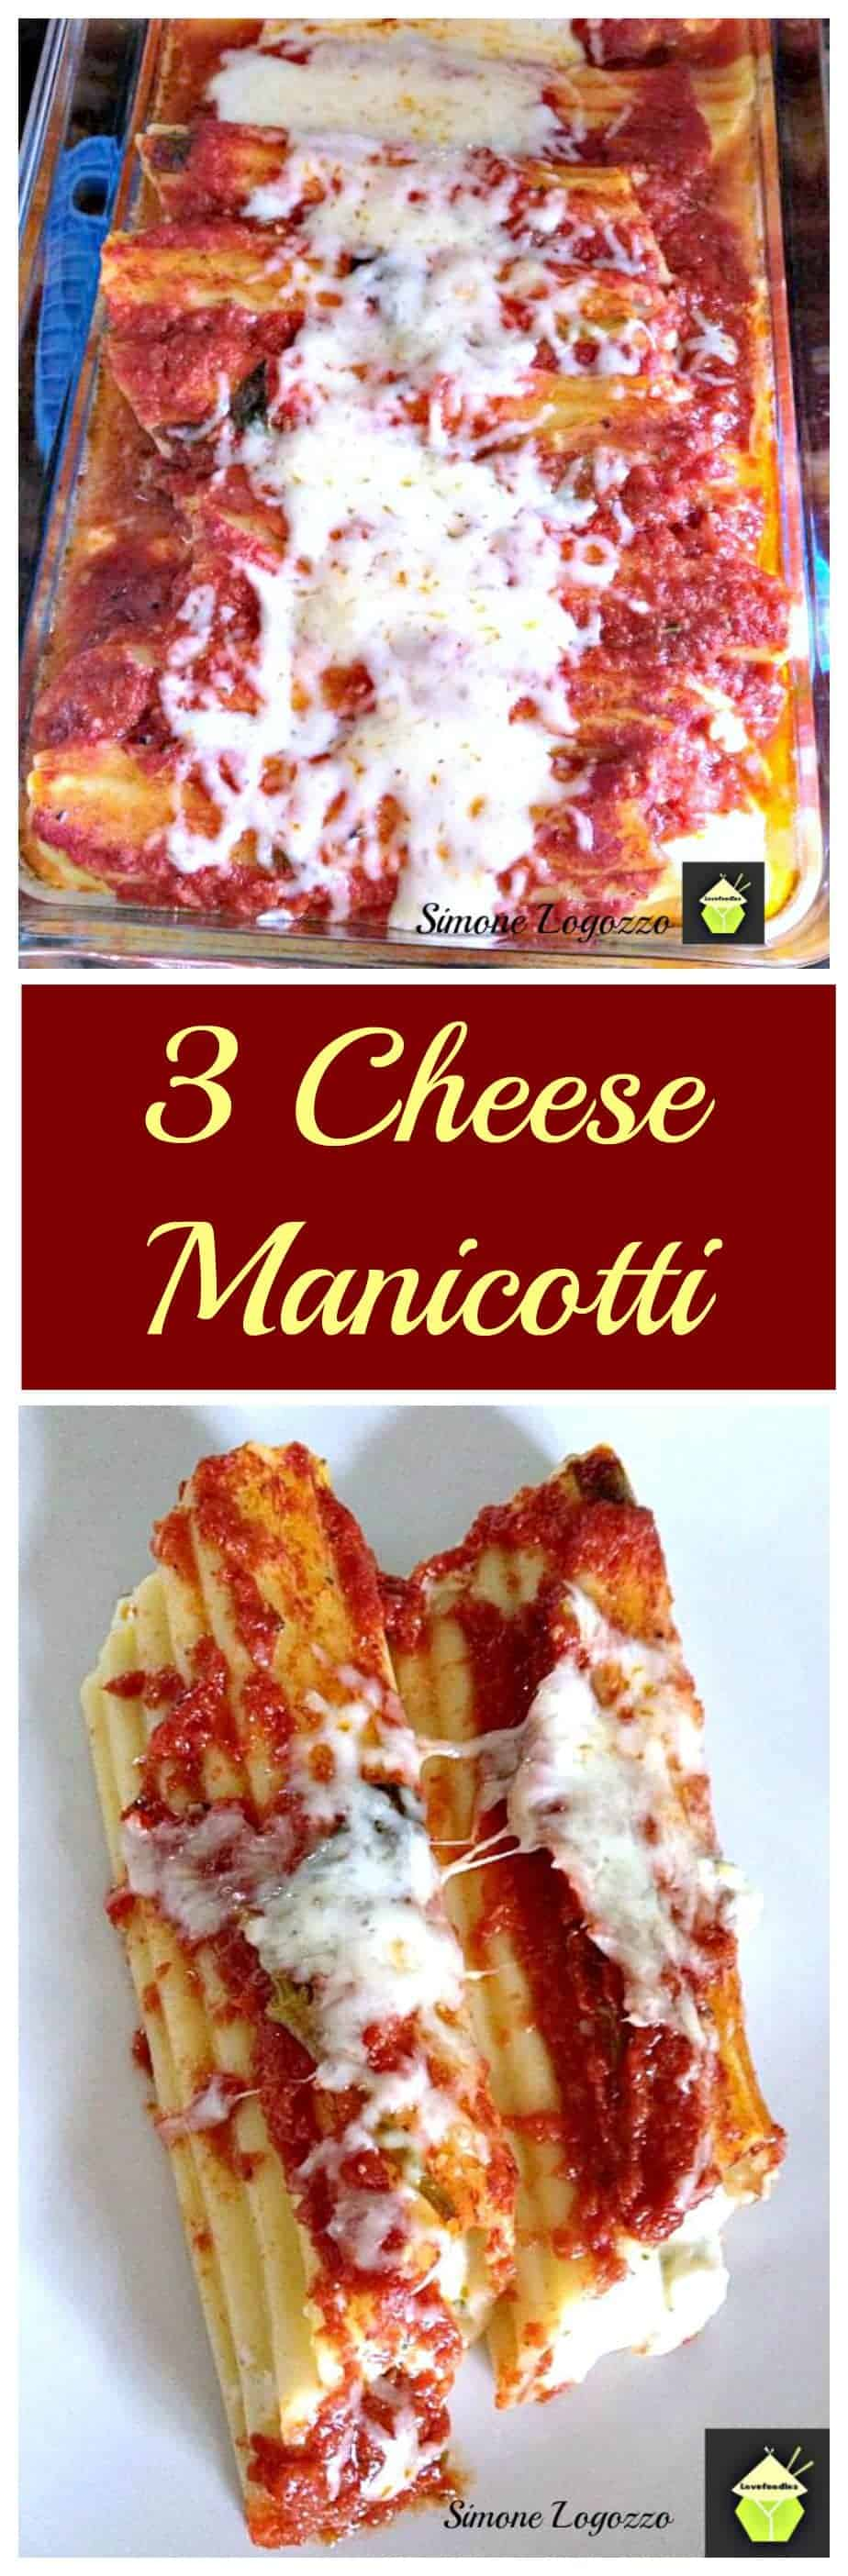 Three Cheese Stuffed Manicotti - A great tasting easy recipe and freezer friendly too! Perfect for busy families.